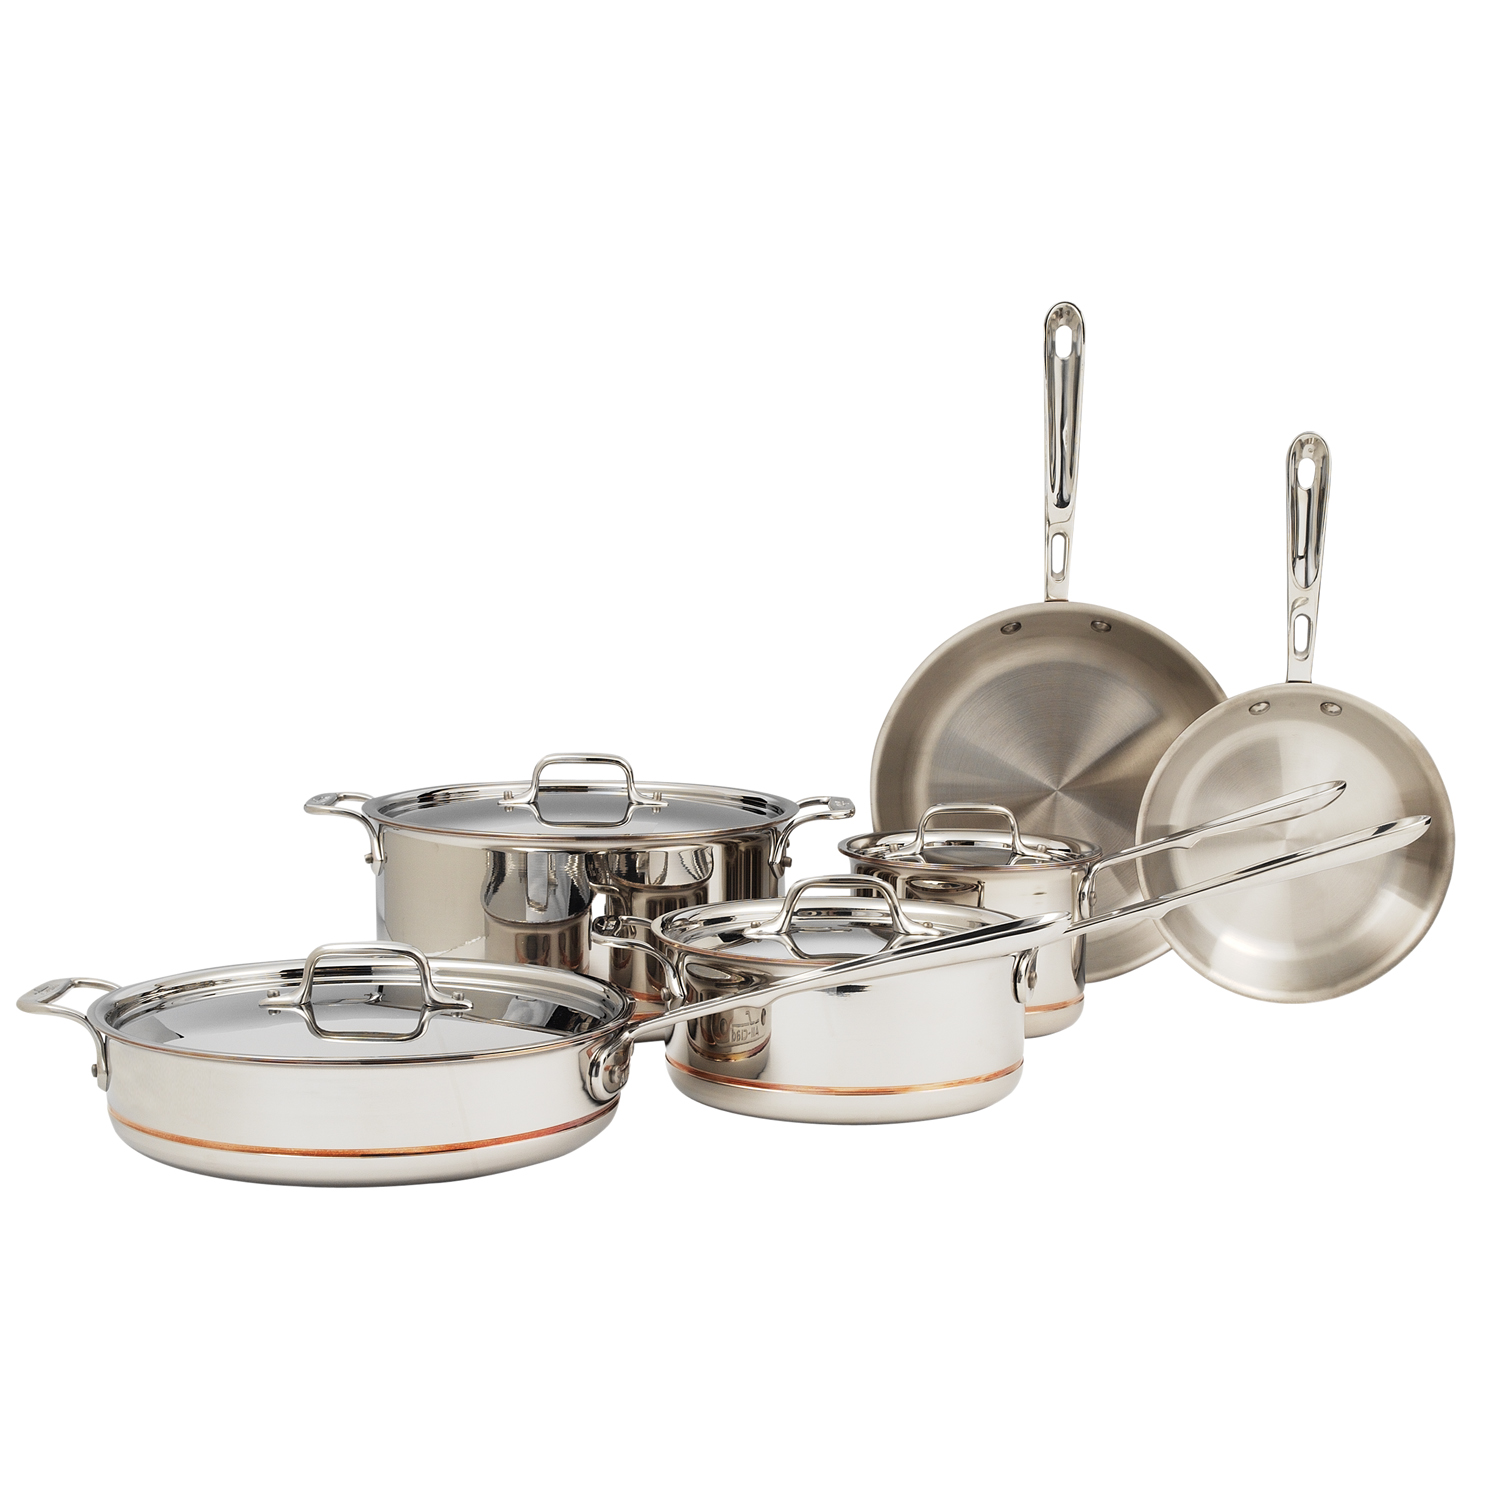 All-Clad copper core 10-piece set